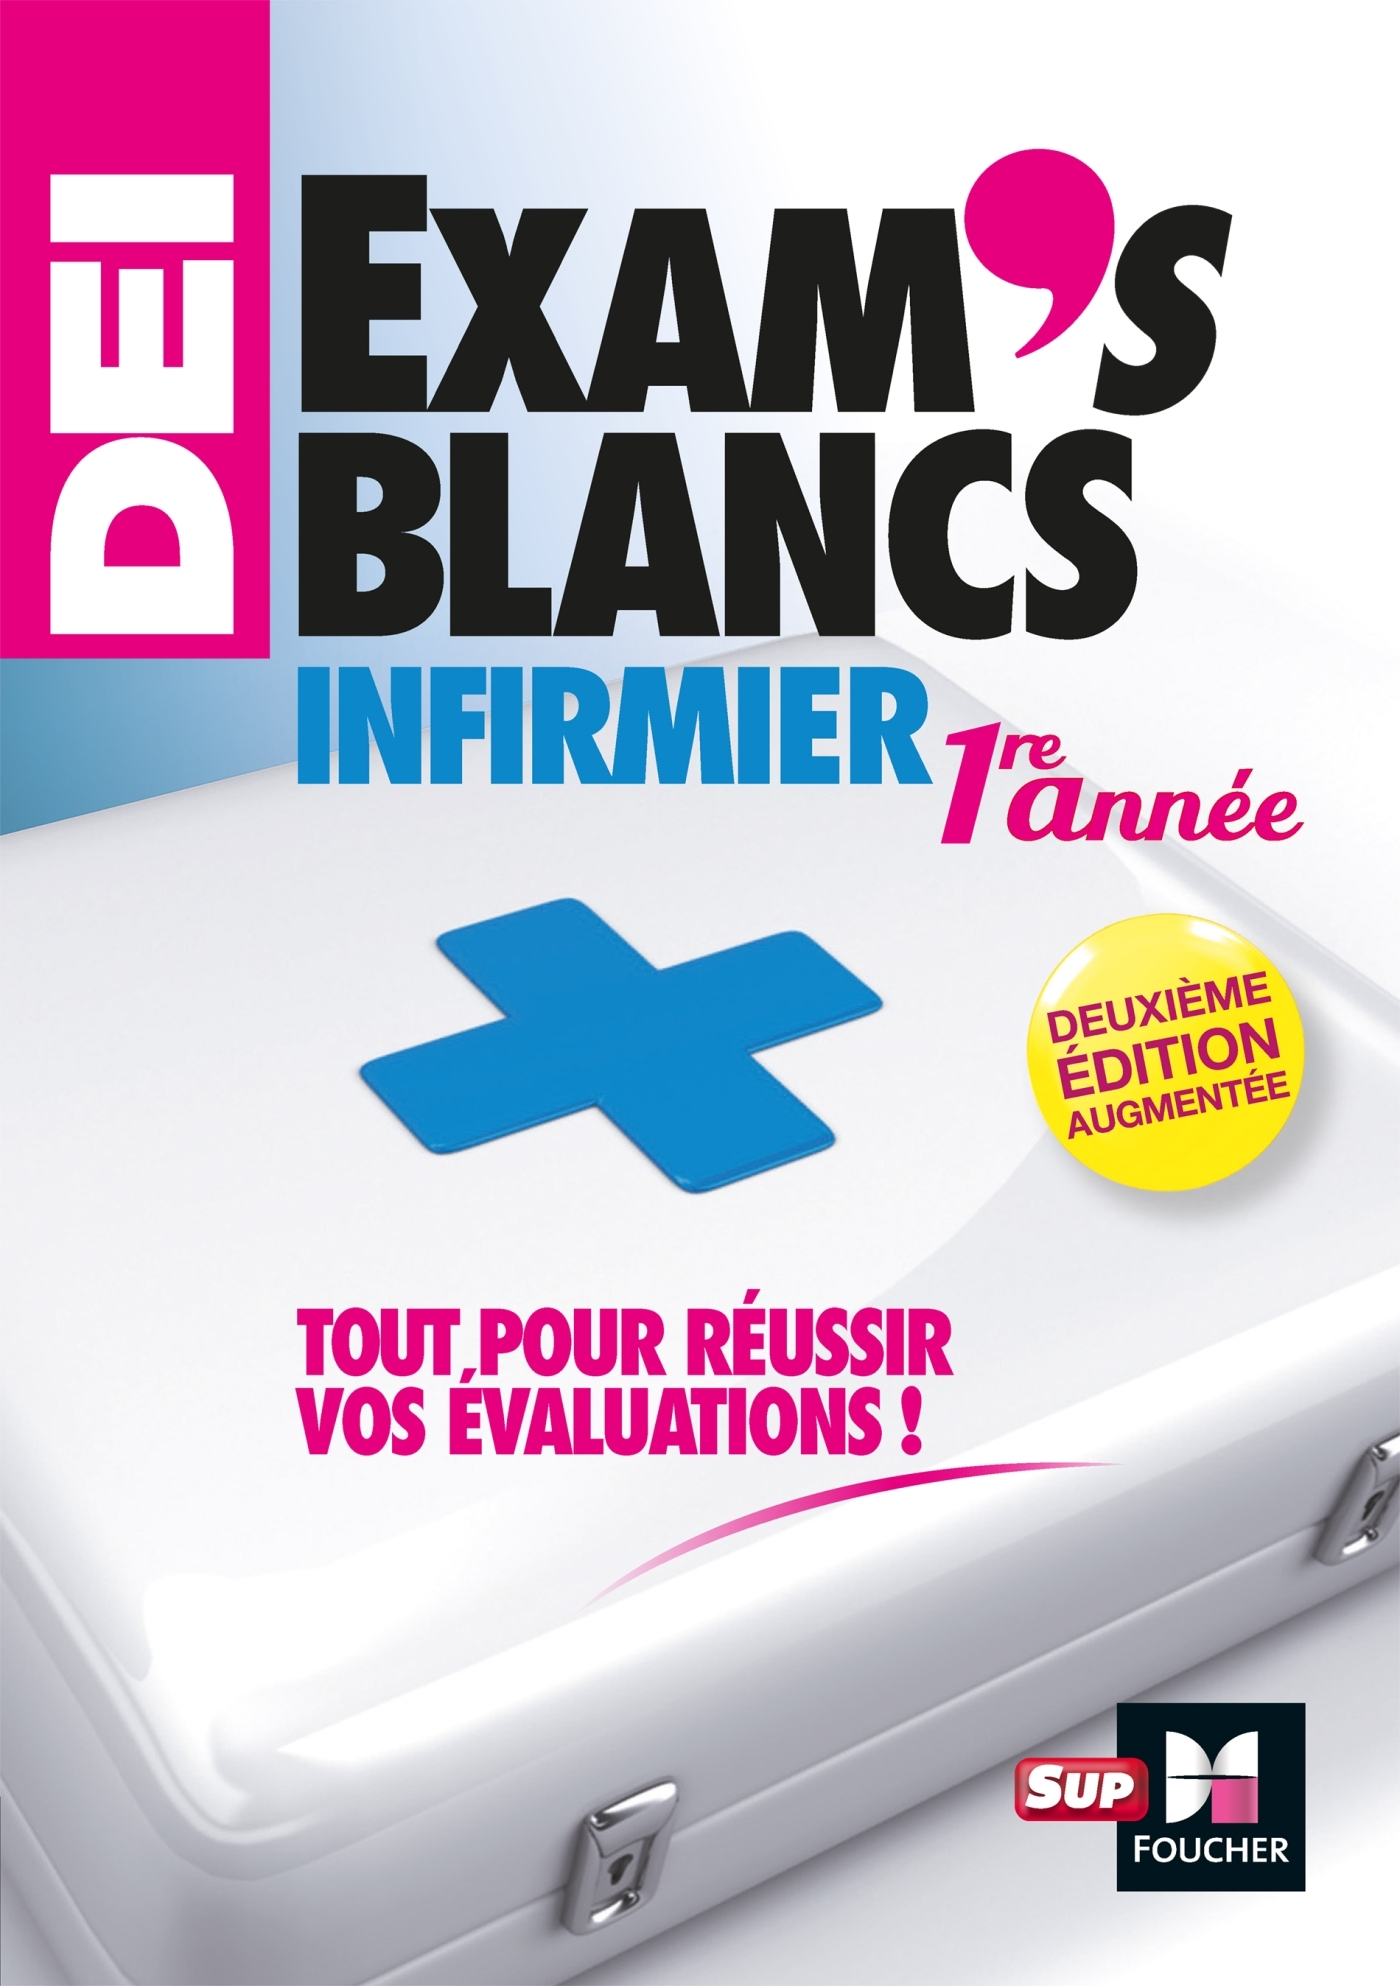 EXAM'S BLANCS 1E ANNEE -  EVALUATIONS CORRIGEES ET COMMENTEES- DEI DIPLOME INFIRMIER - ENTRAINEMENT